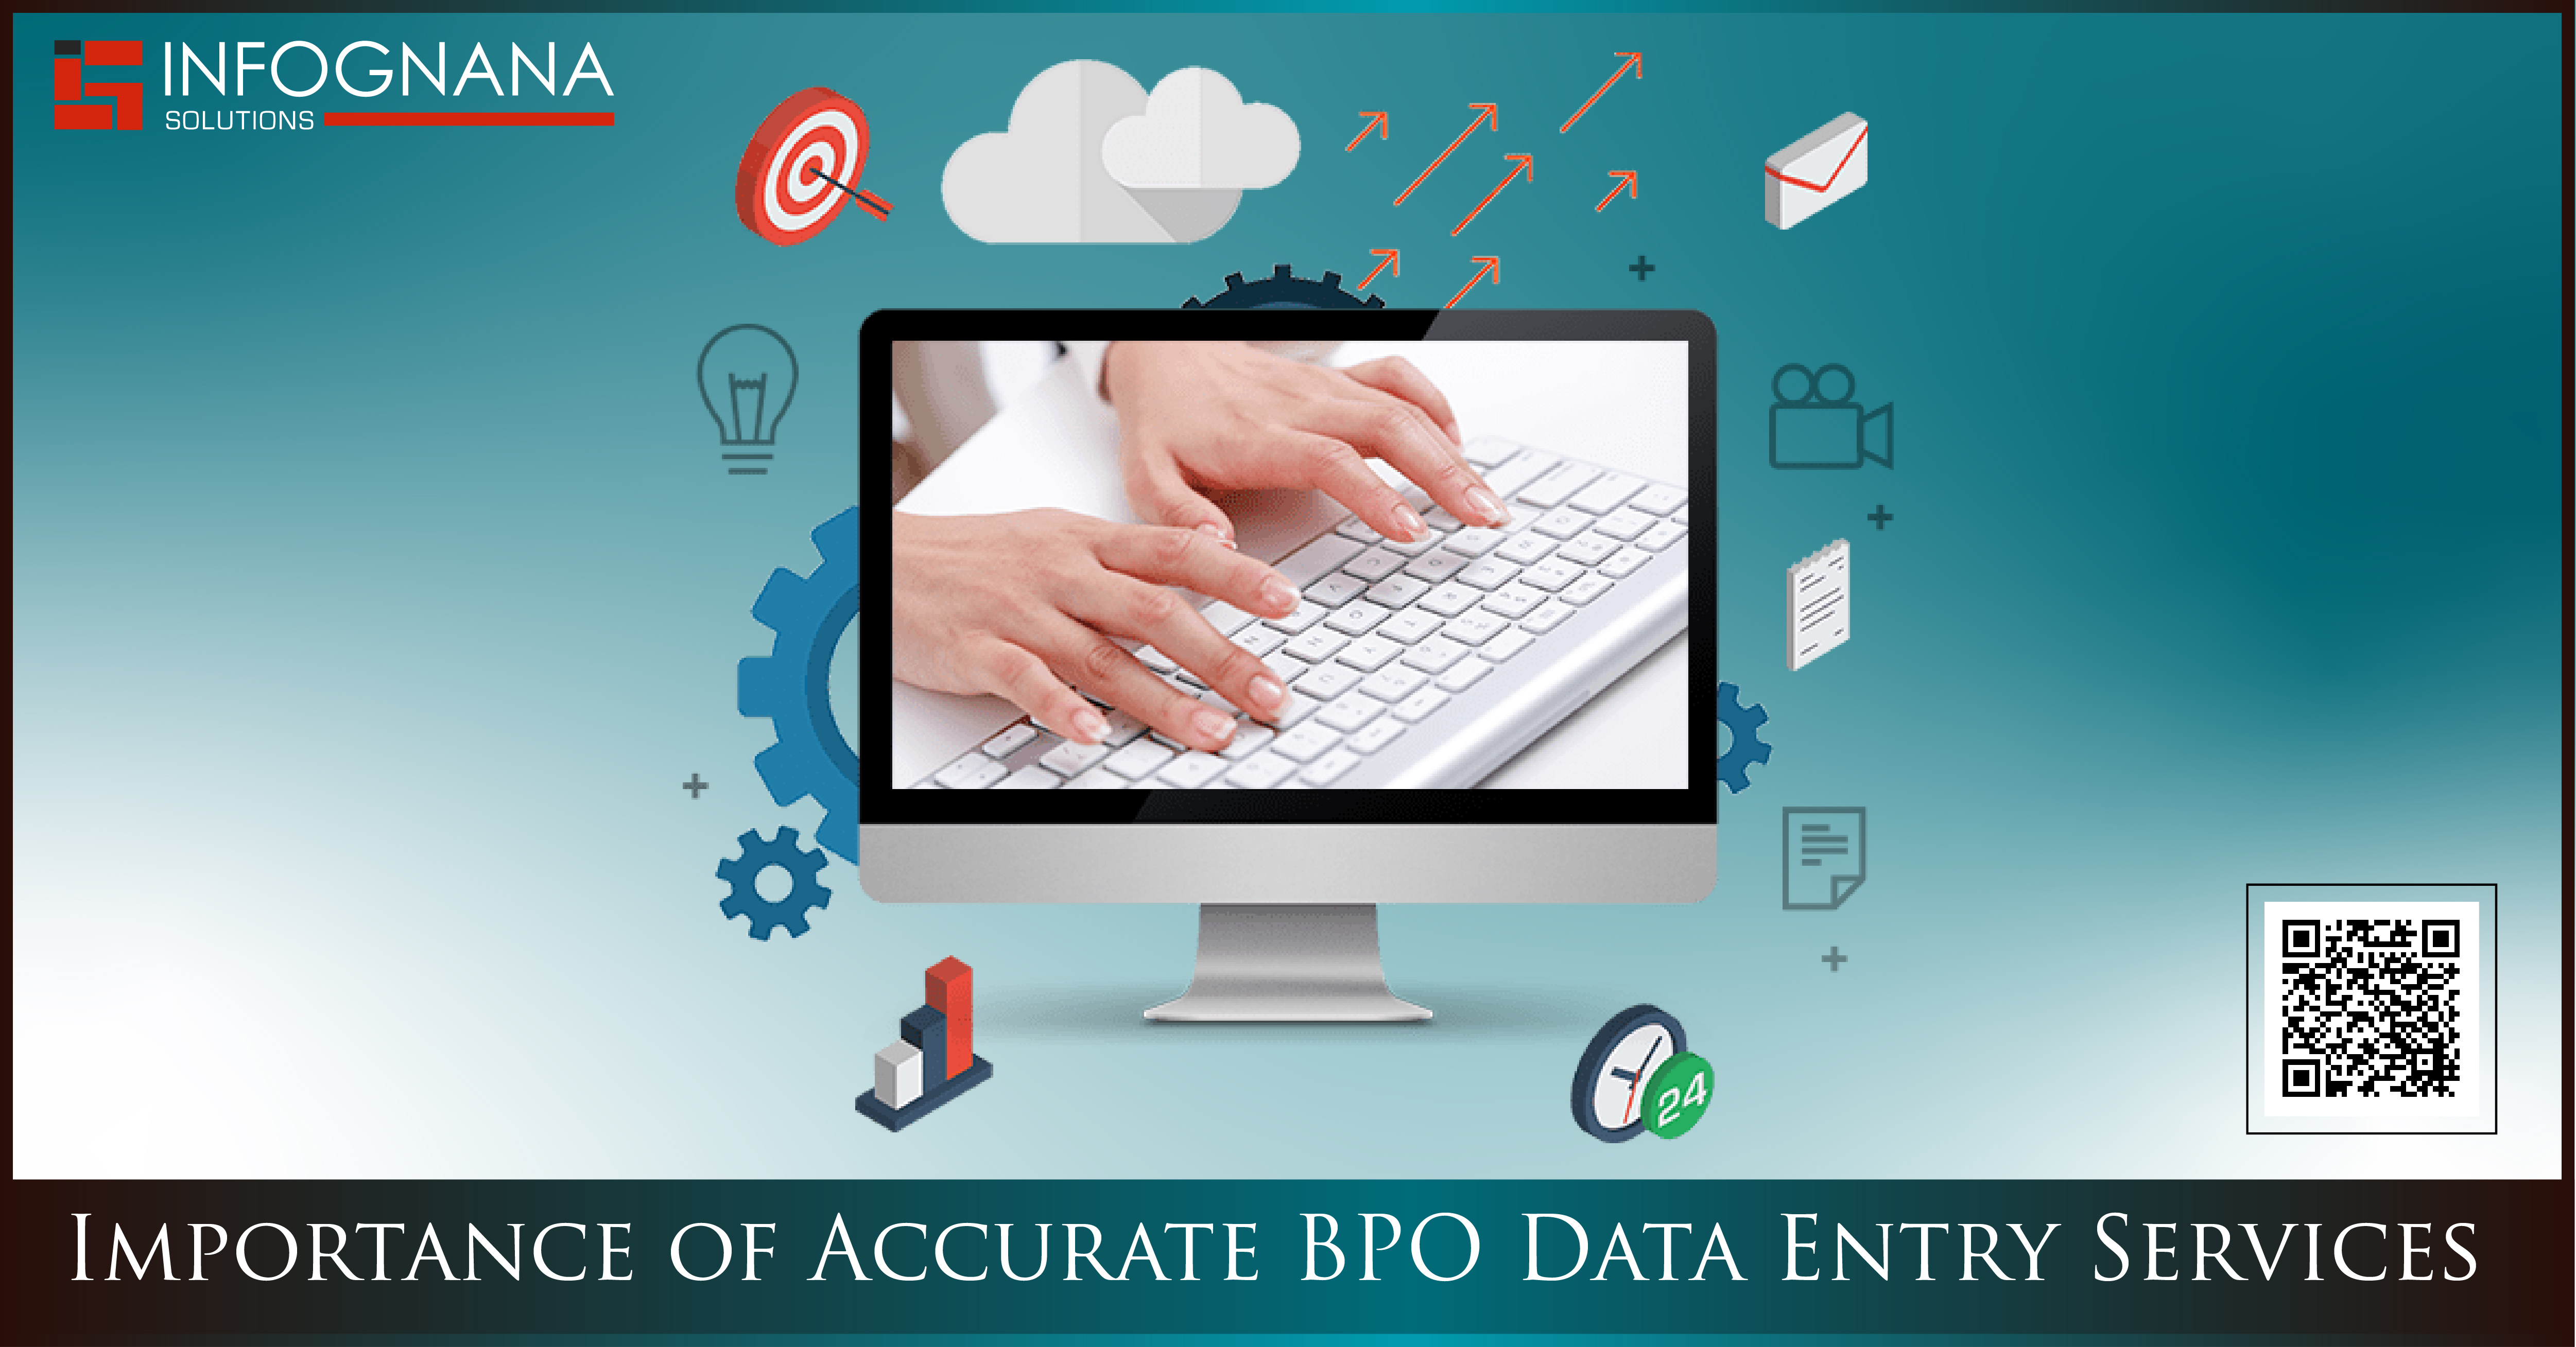 Importance of Accurate BPO Data Entry Services